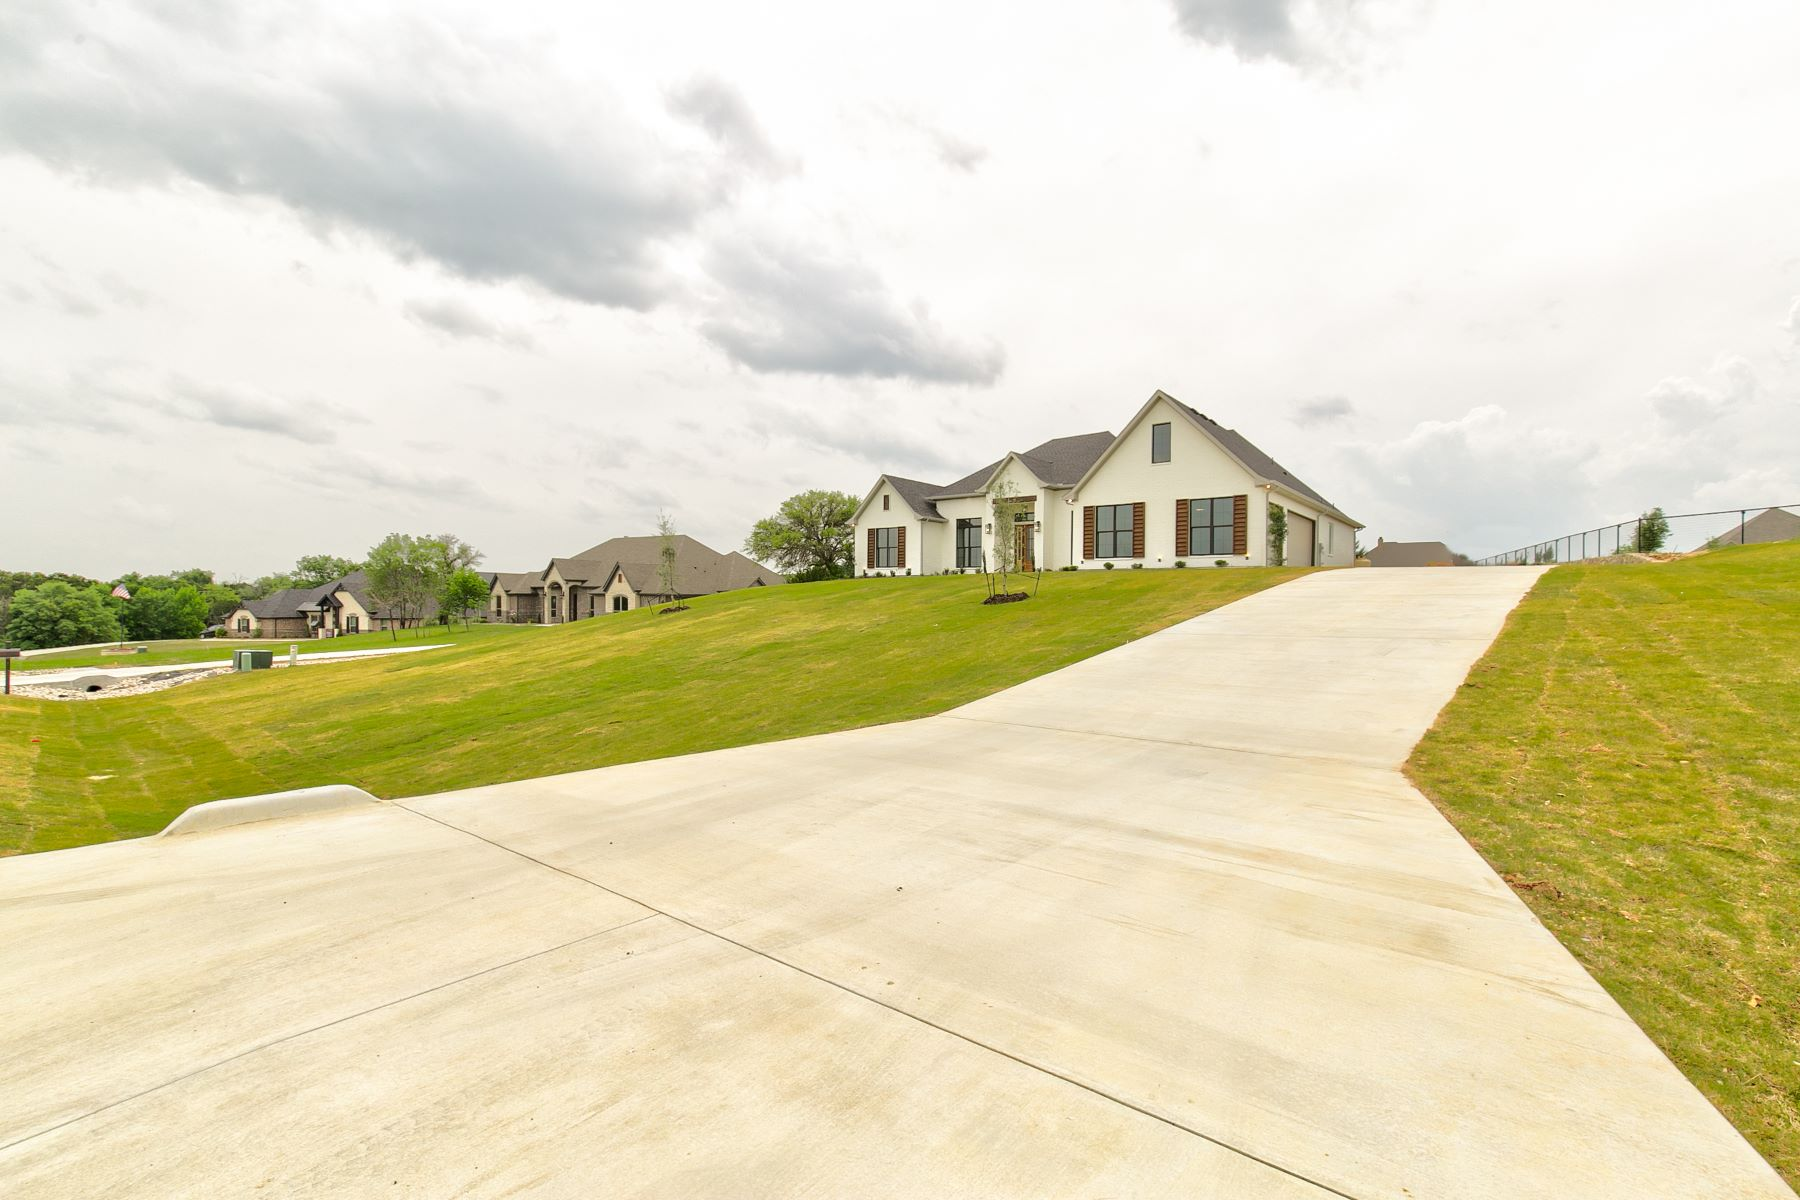 Single Family Homes for Sale at Meticulously designed and thoughtfully crafted every modern farmhouse 333 Kenyon Court Granbury, Texas 76049 United States